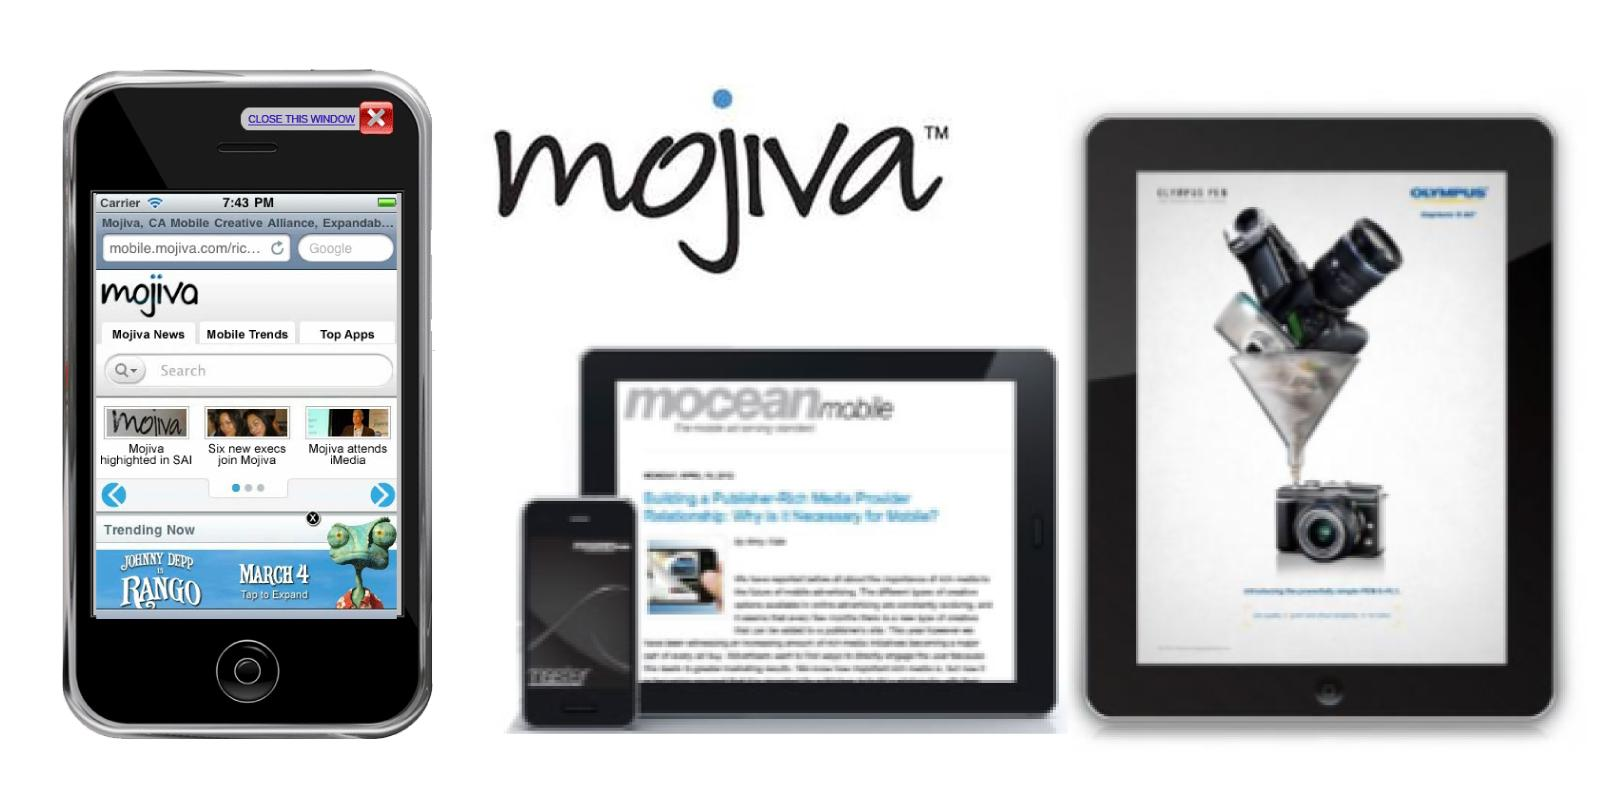 Mojiva Advertising device detection